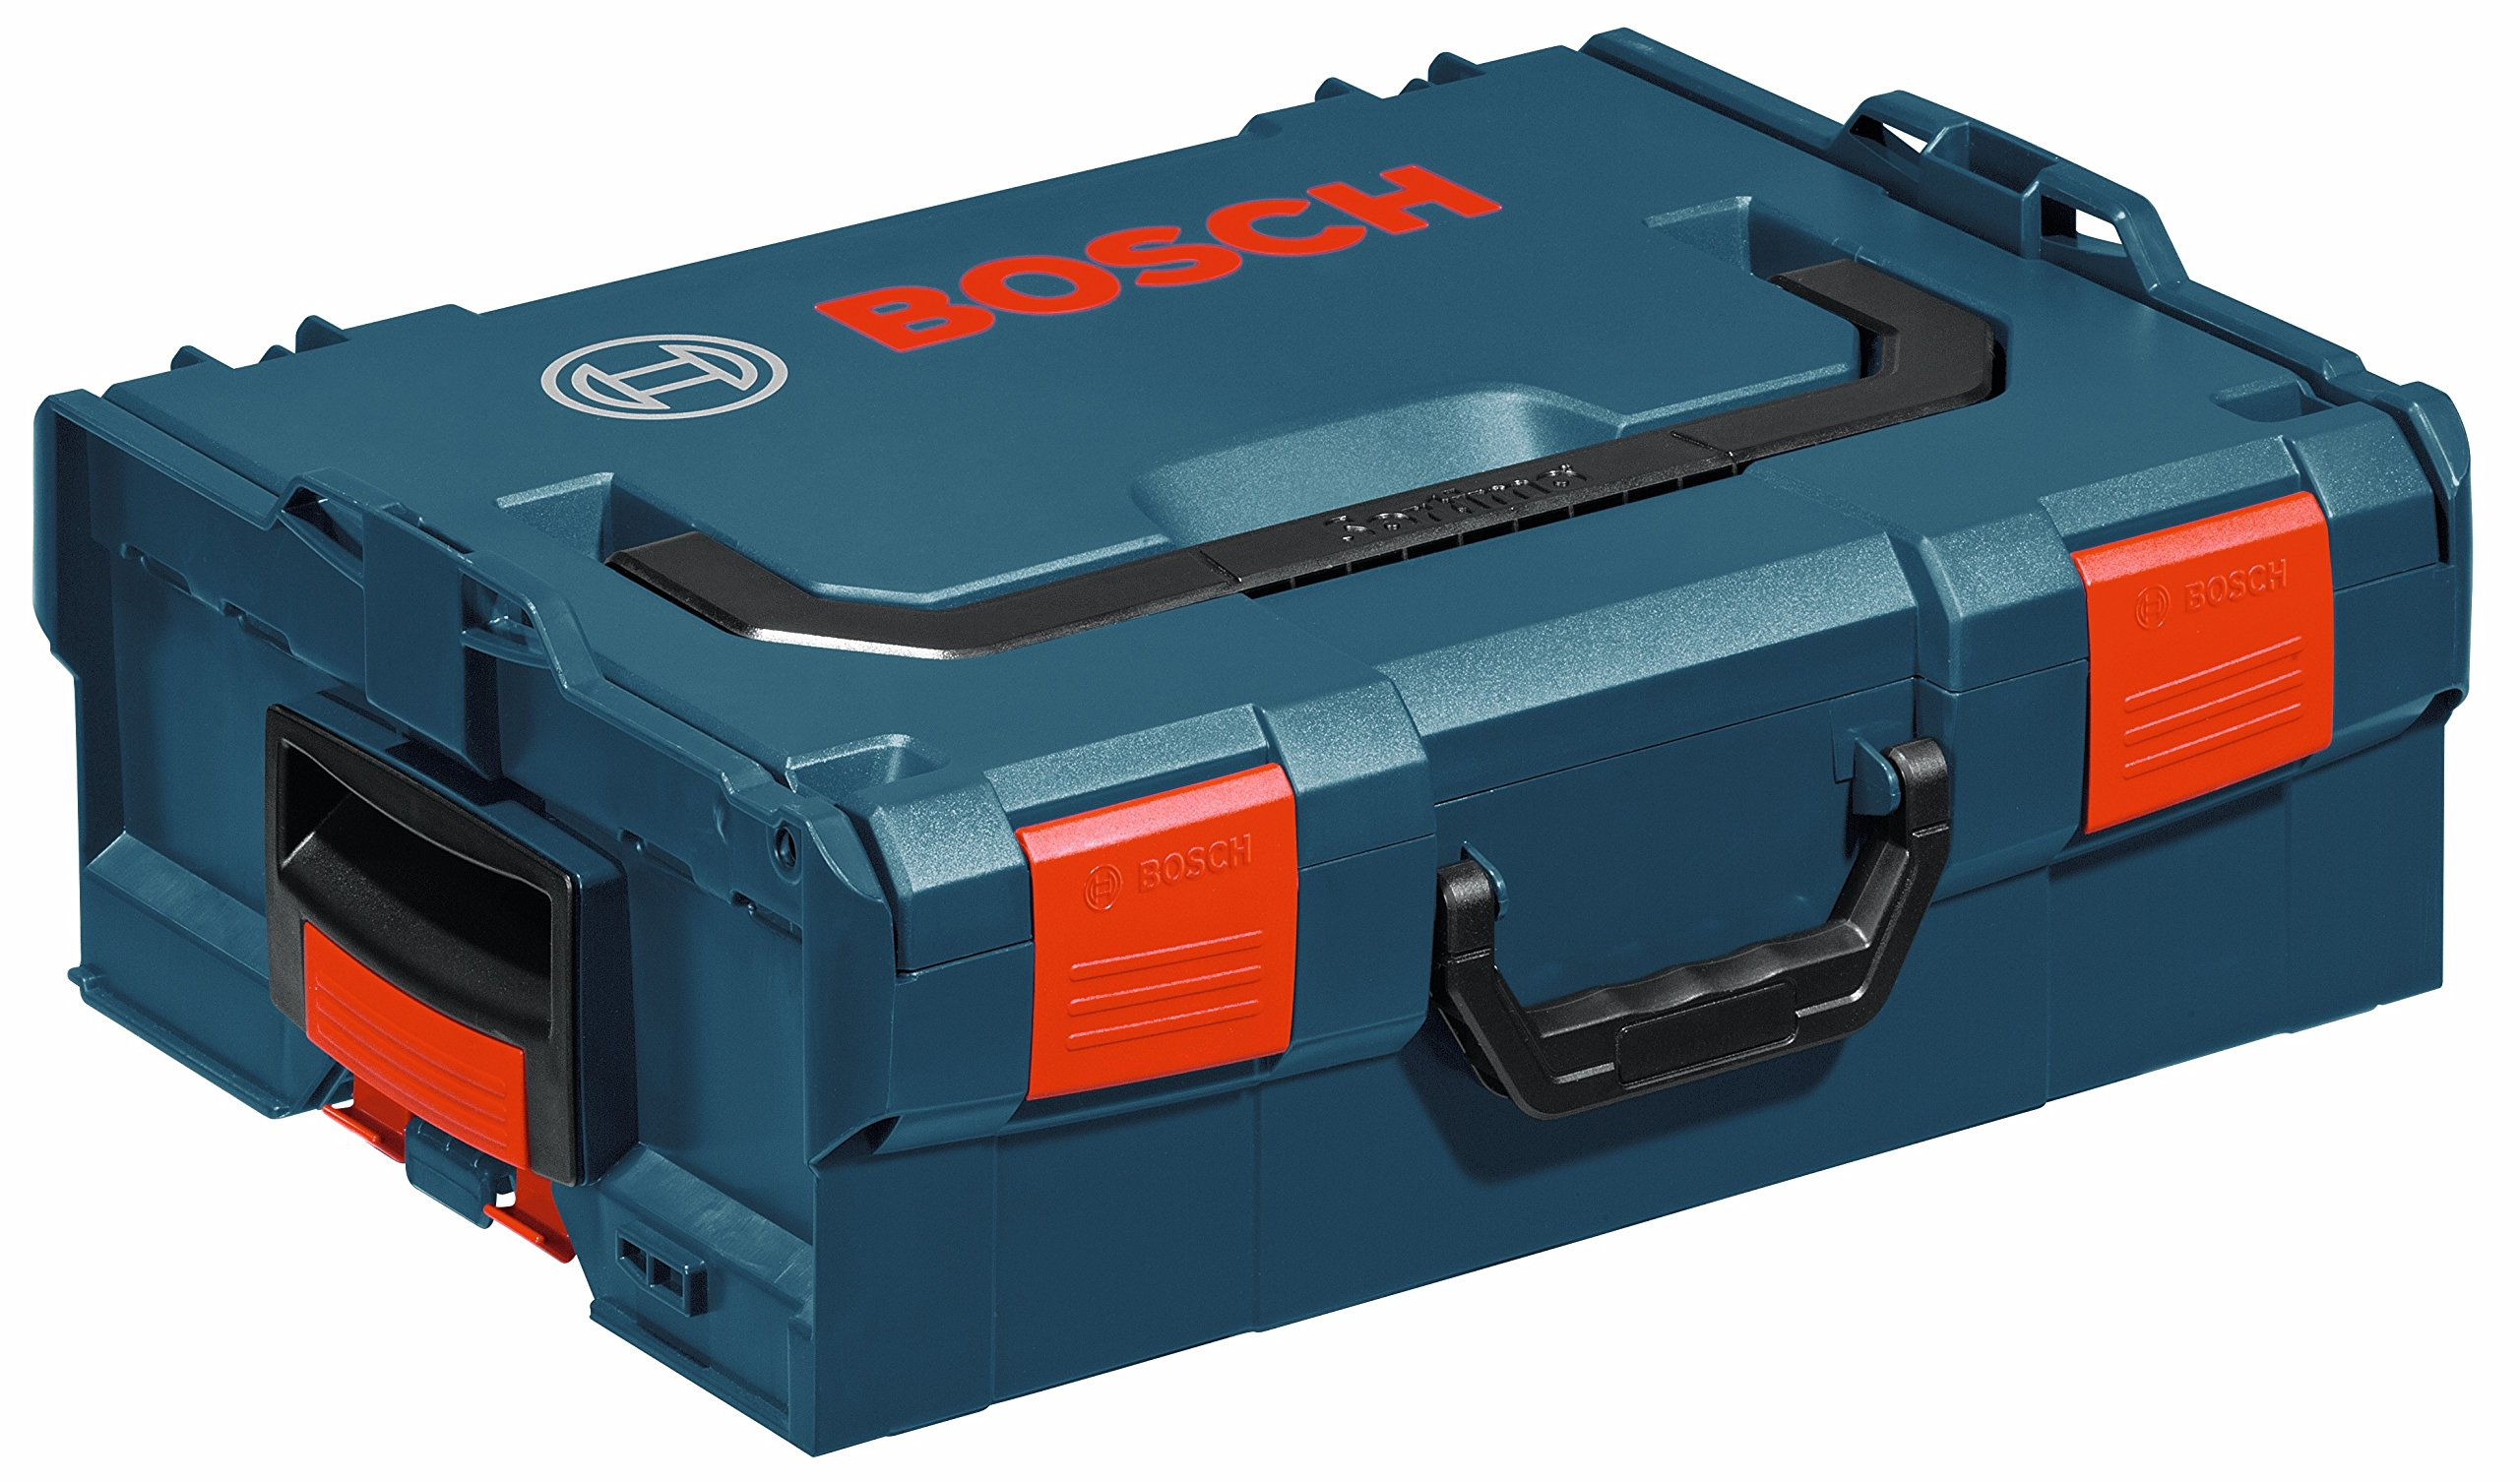 Bosch L-BOXX-2 6 In. x 14 In. x 17.5 In. Stackable Tool Storage Case by Bosch